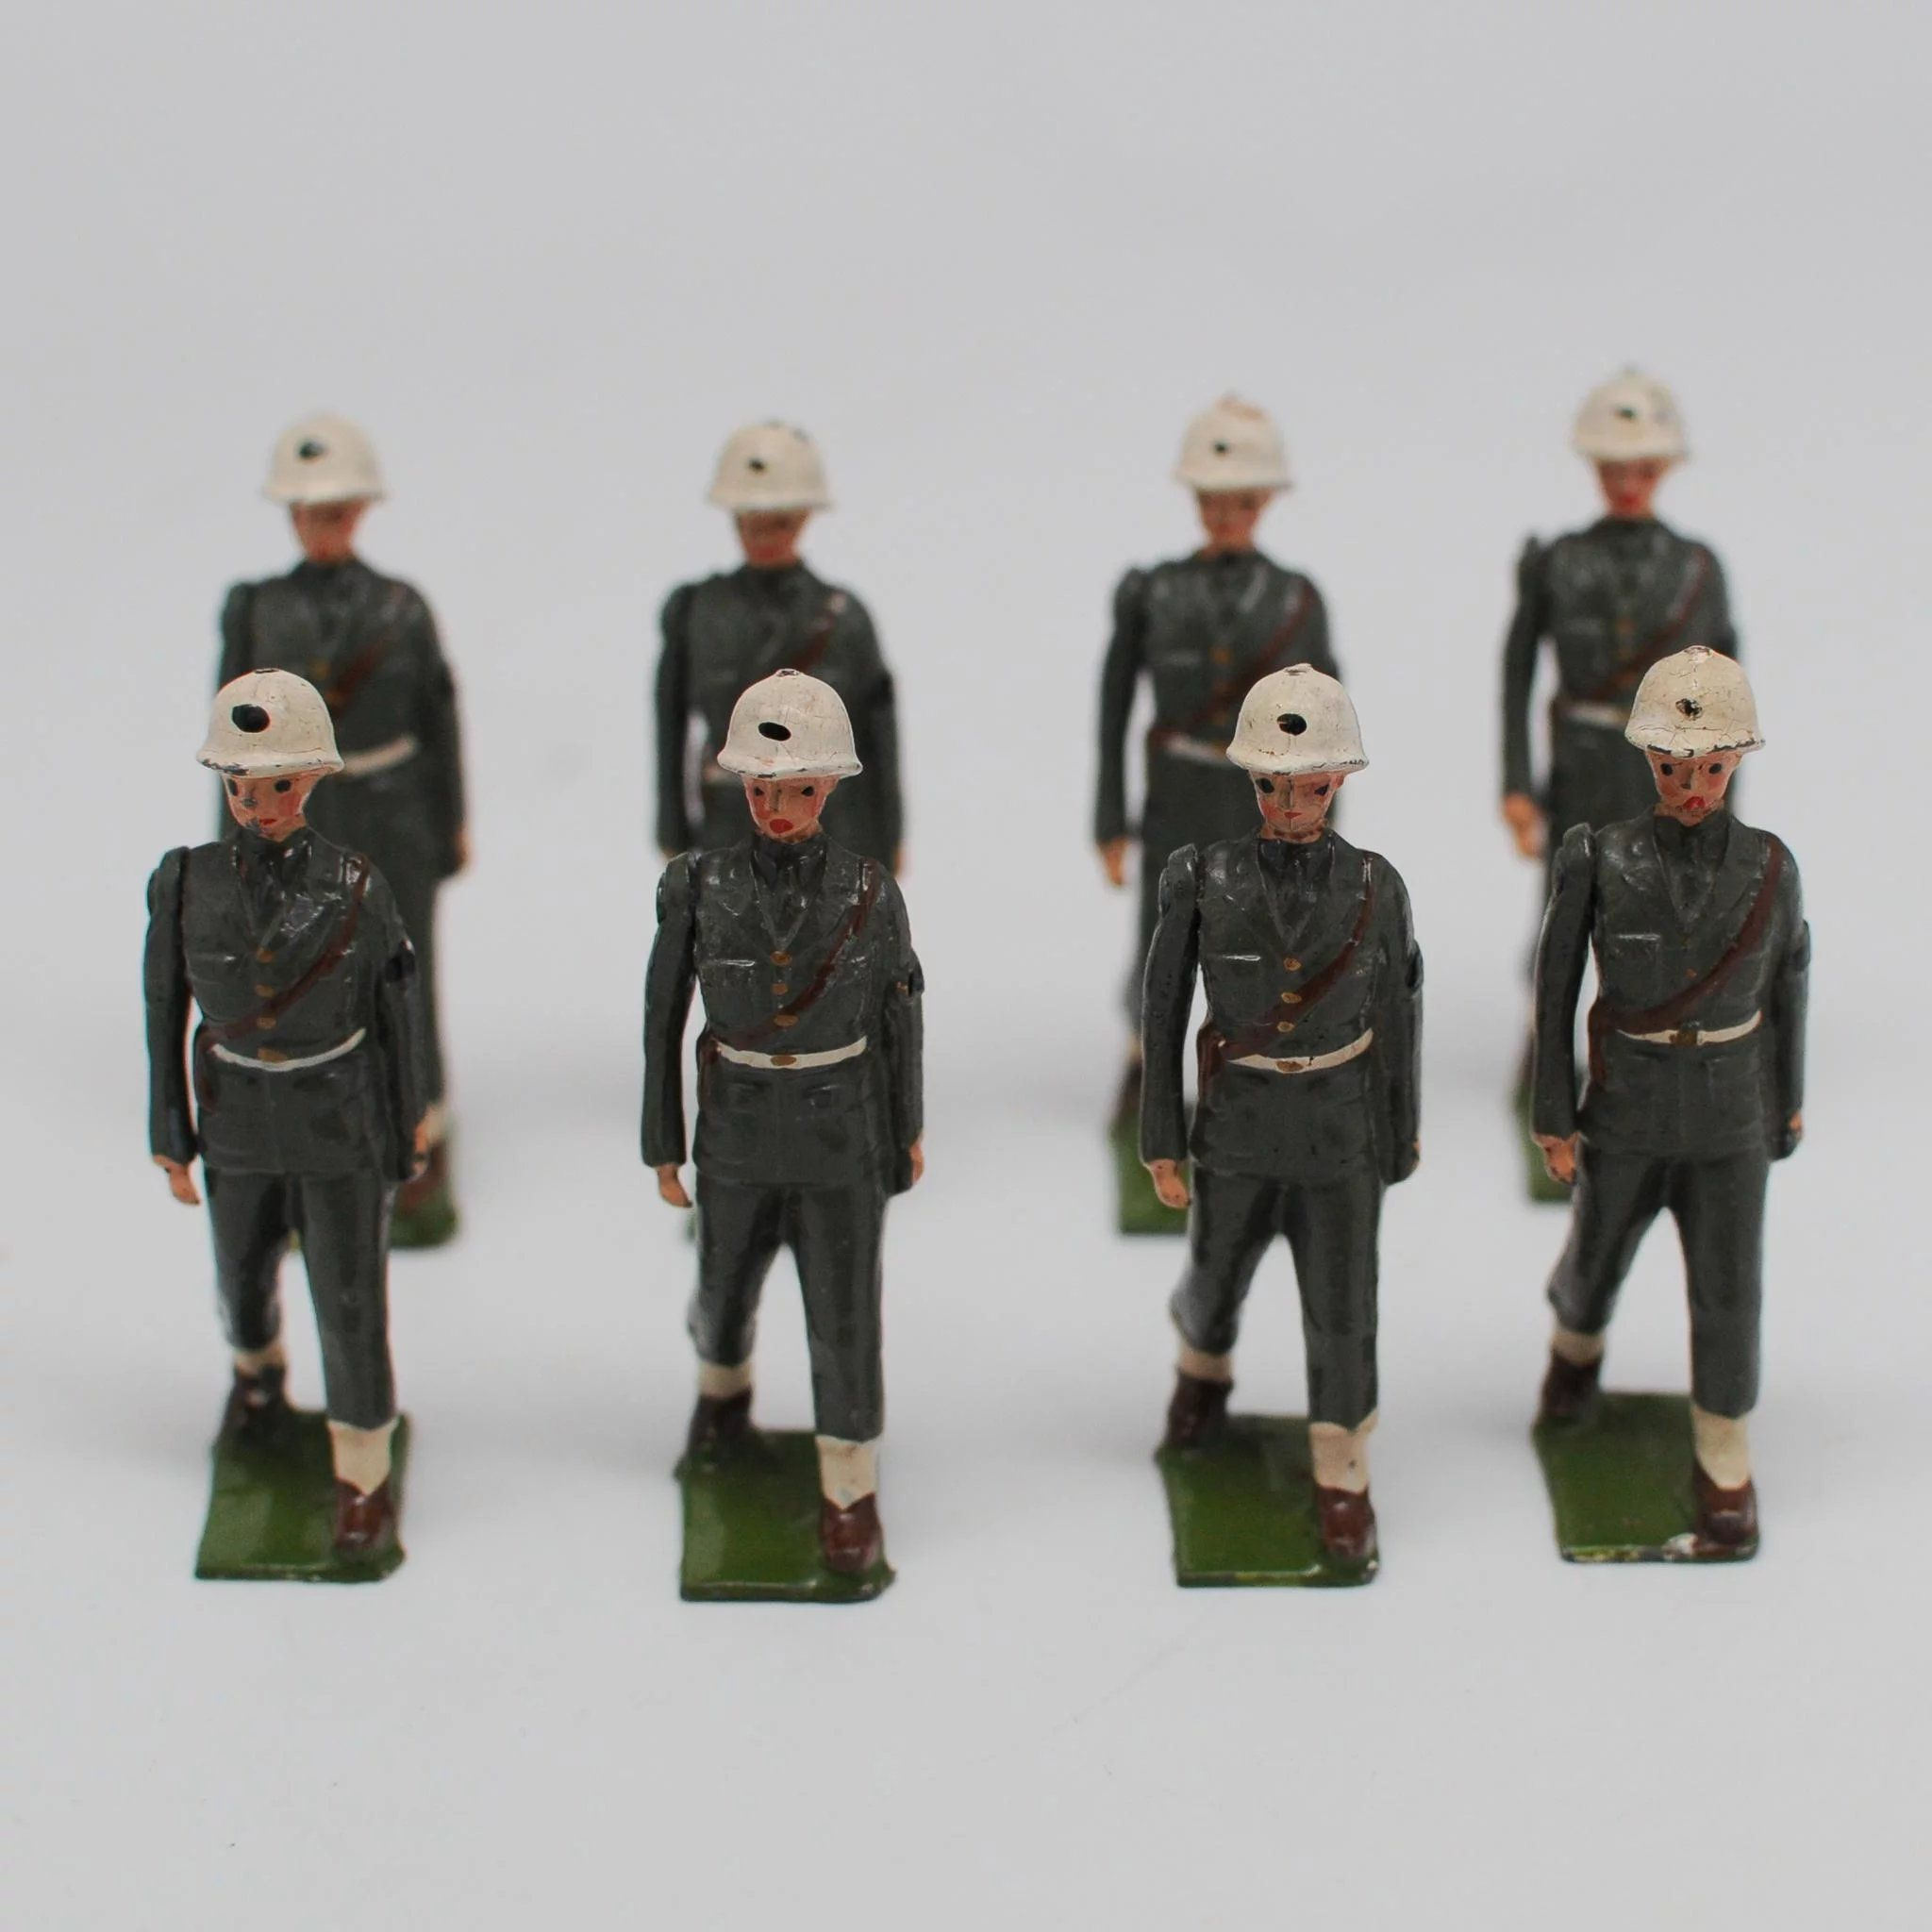 Britains Set 2021 US Military Police ('Snowdrops') 8 lead